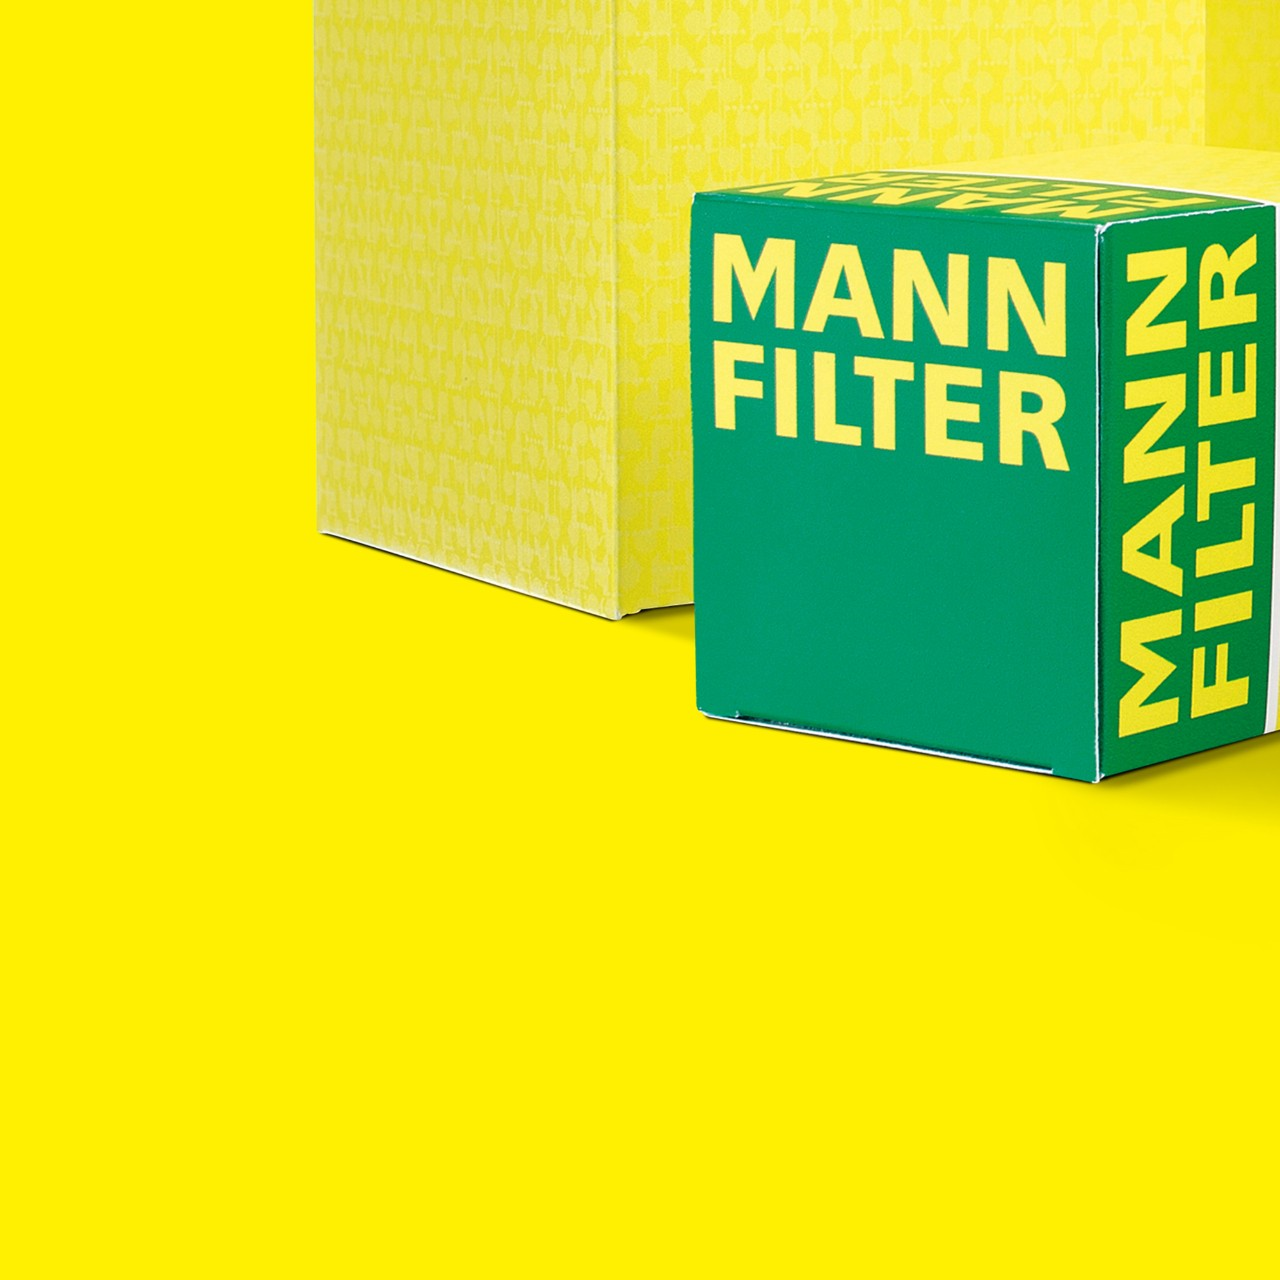 MANN-FILTER award part 3